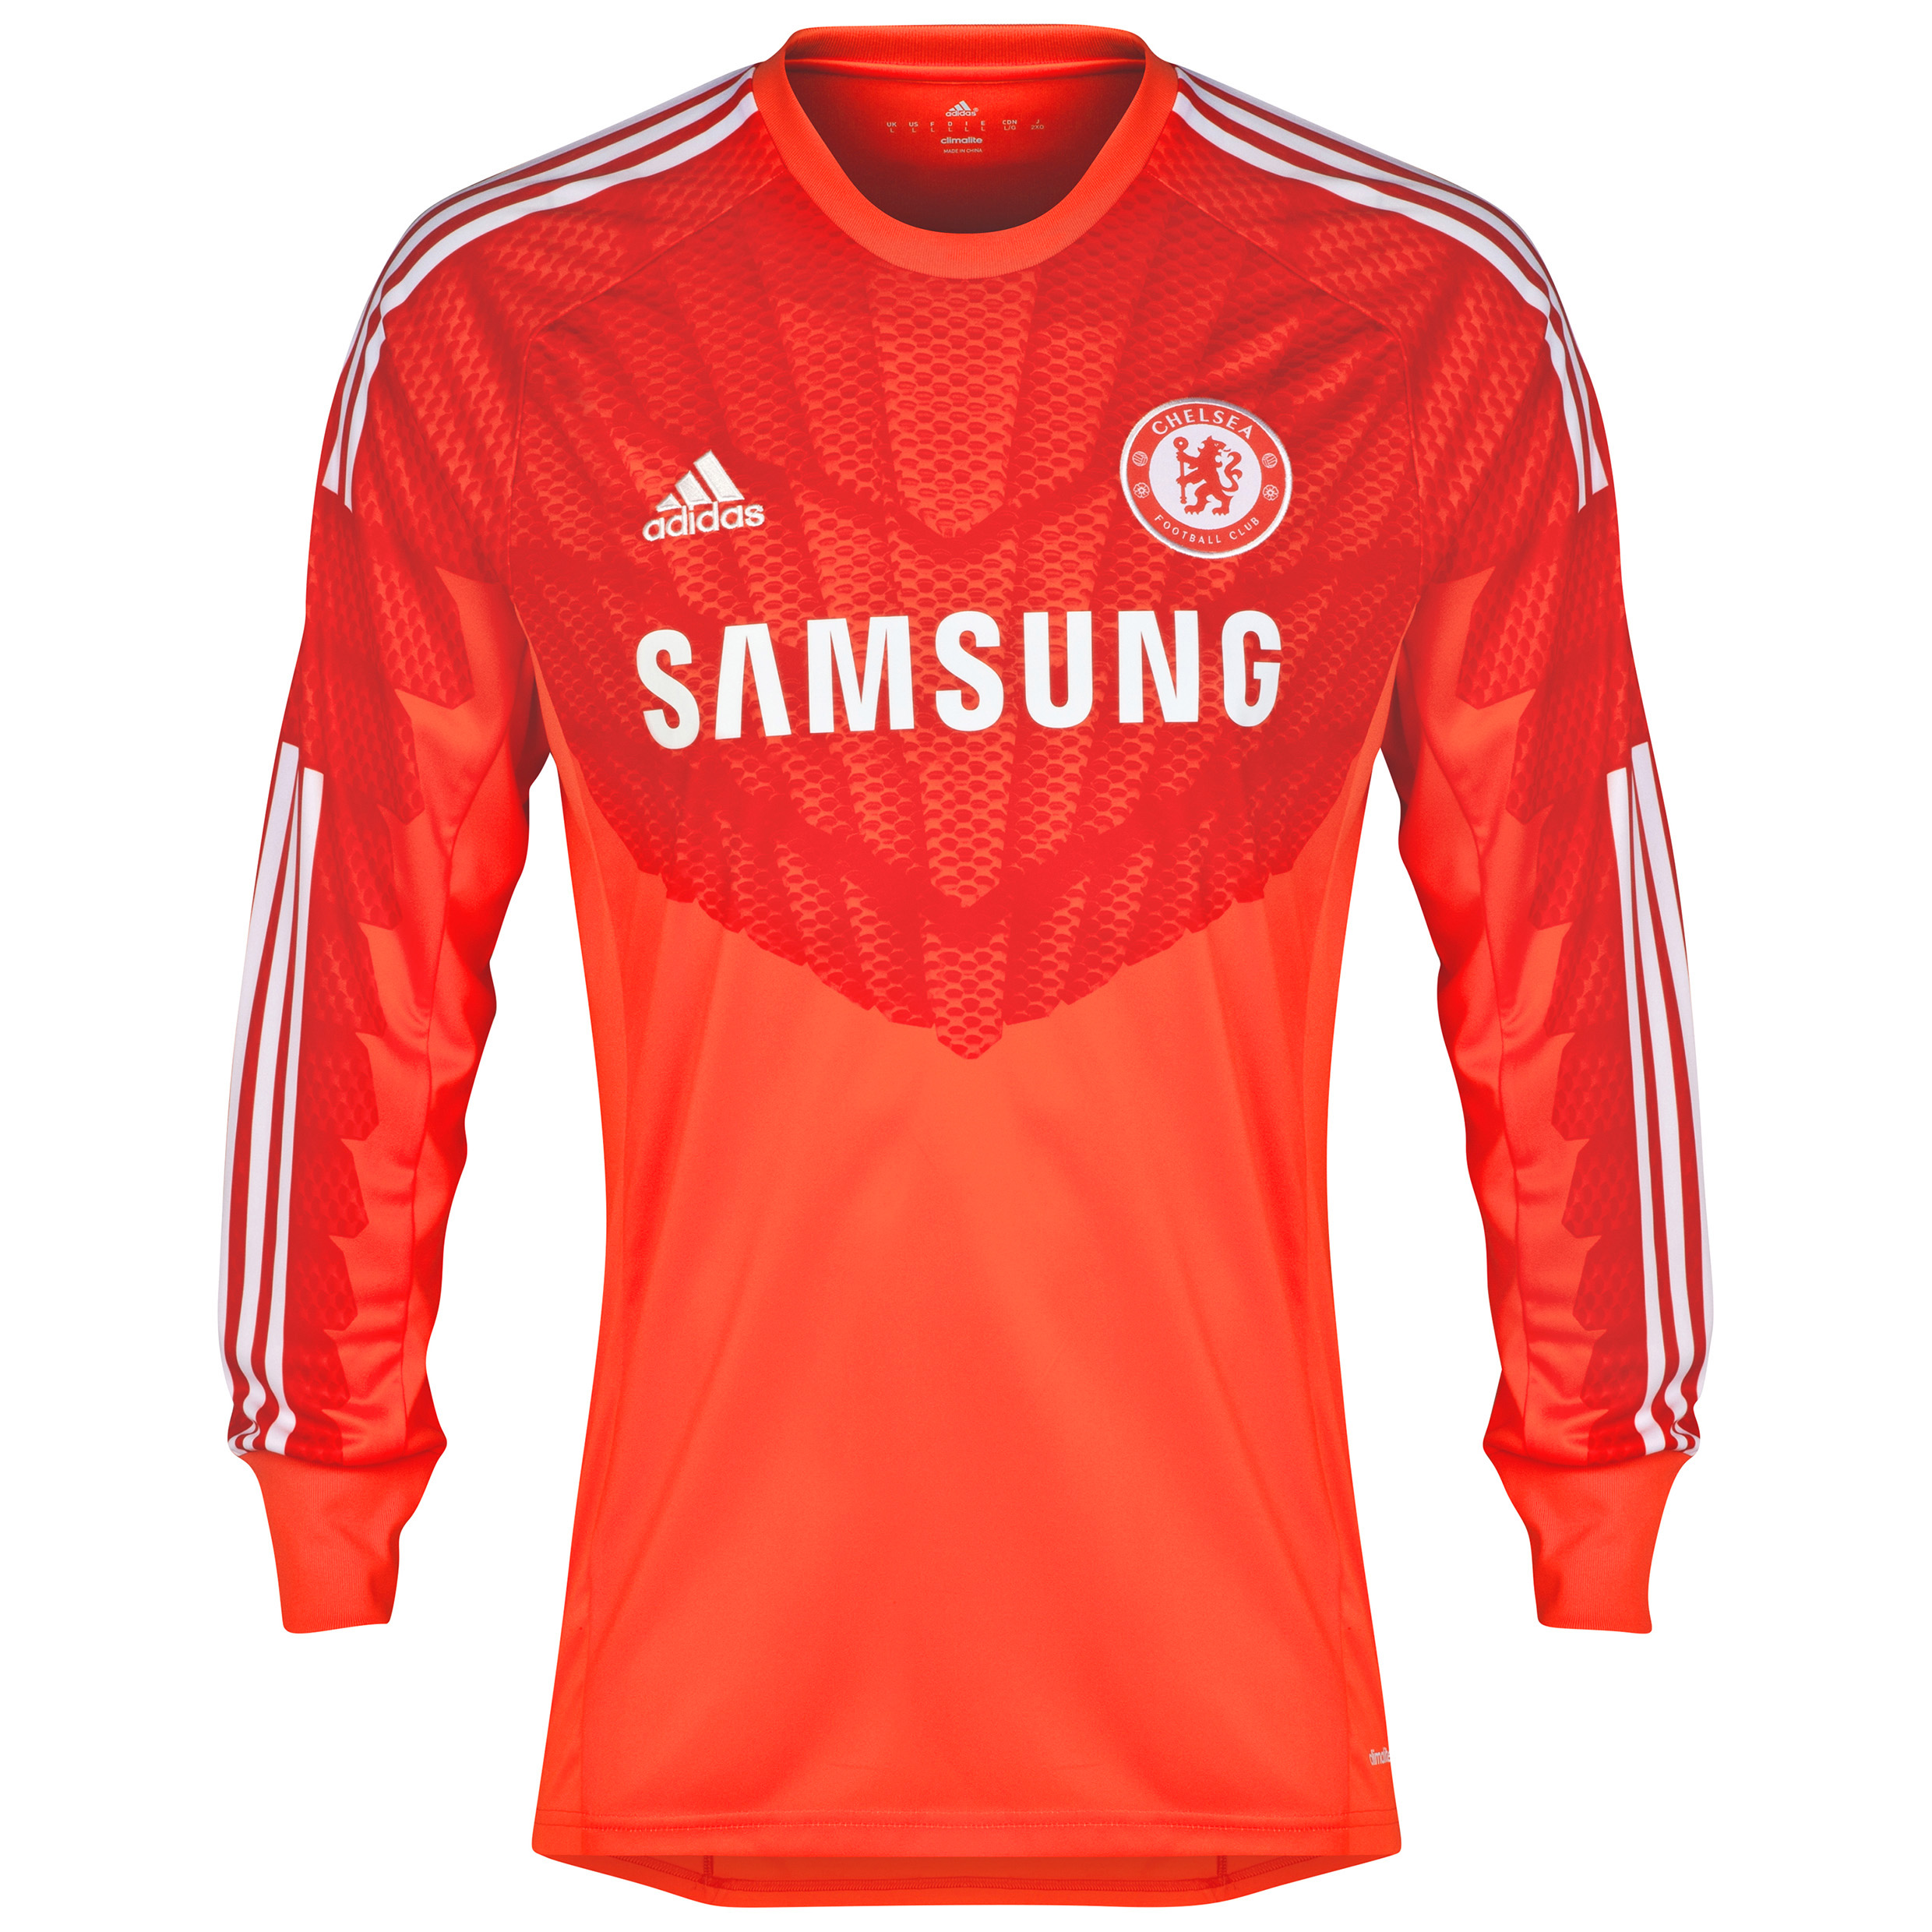 Chelsea Kid's Goalkeeper Shirt 2014/15 Red   A replica of the home team kit, this red 2014/15 Adidas Kid's Long Sleeved Goalkeeper Shirt has Climacool® ventilation to help your